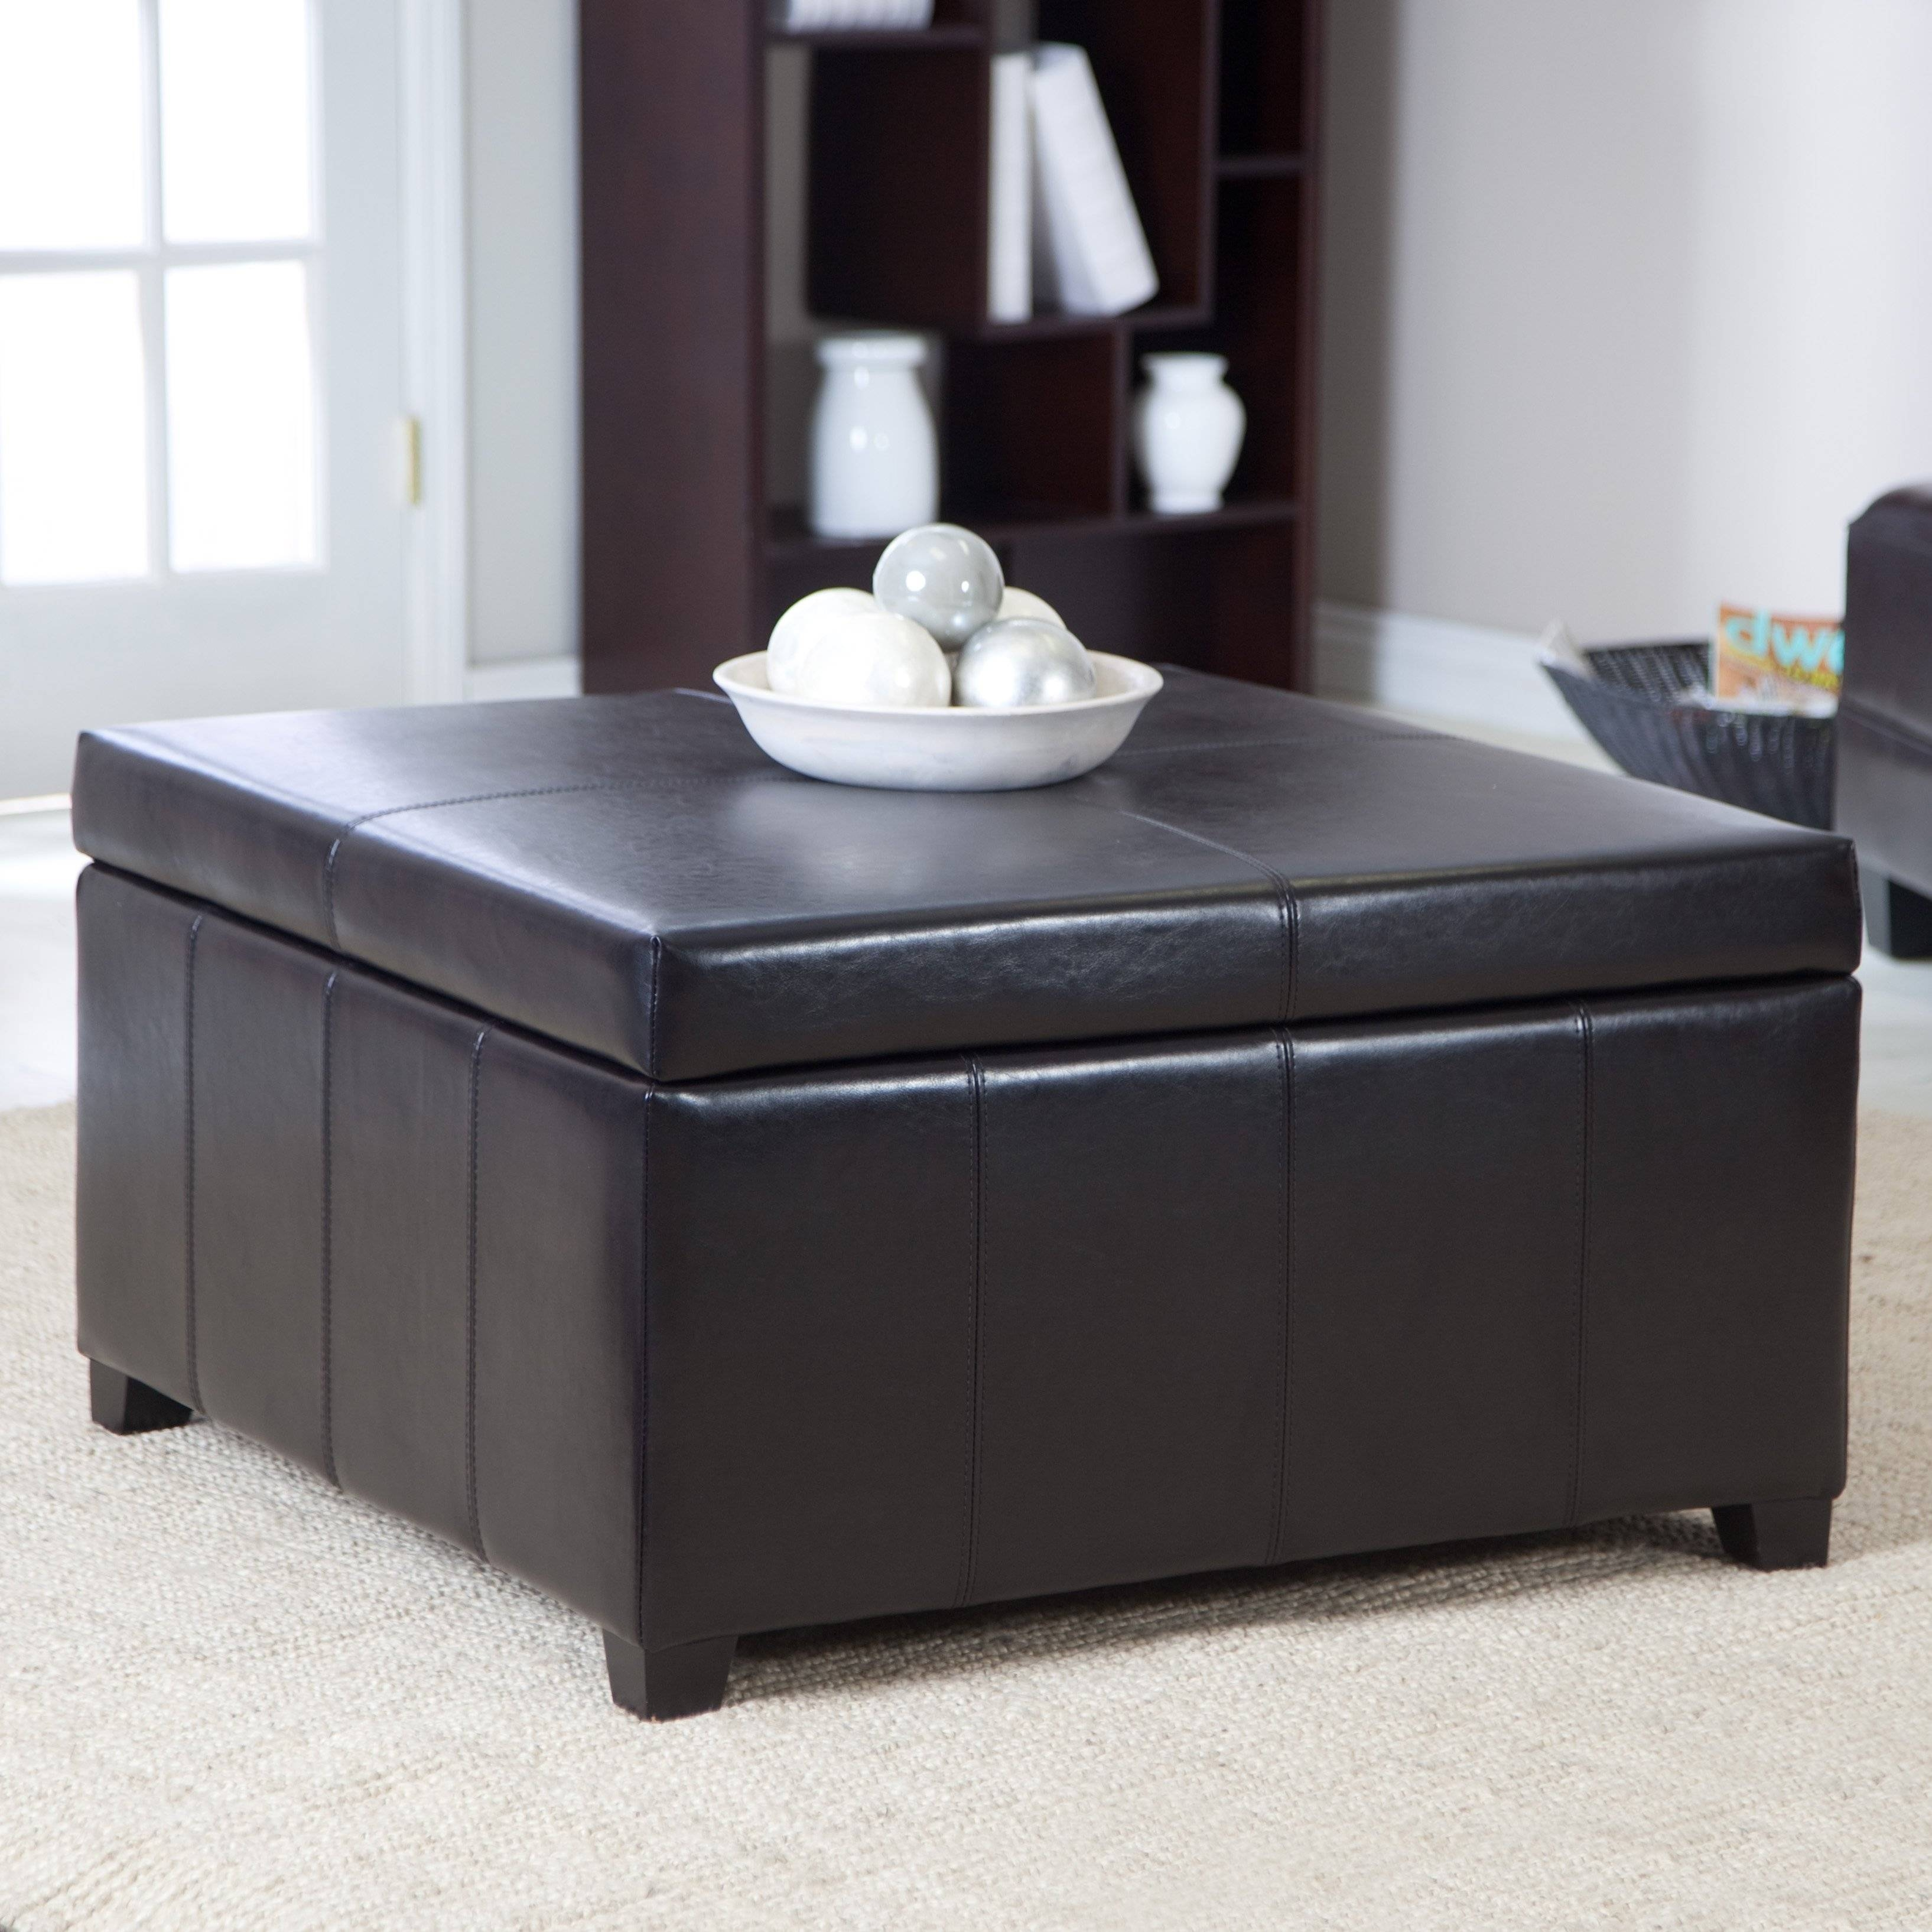 Coffee Table: Appealing Square Storage Ottoman Coffee Table with Brown Leather Ottoman Coffee Tables With Storages (Image 14 of 30)